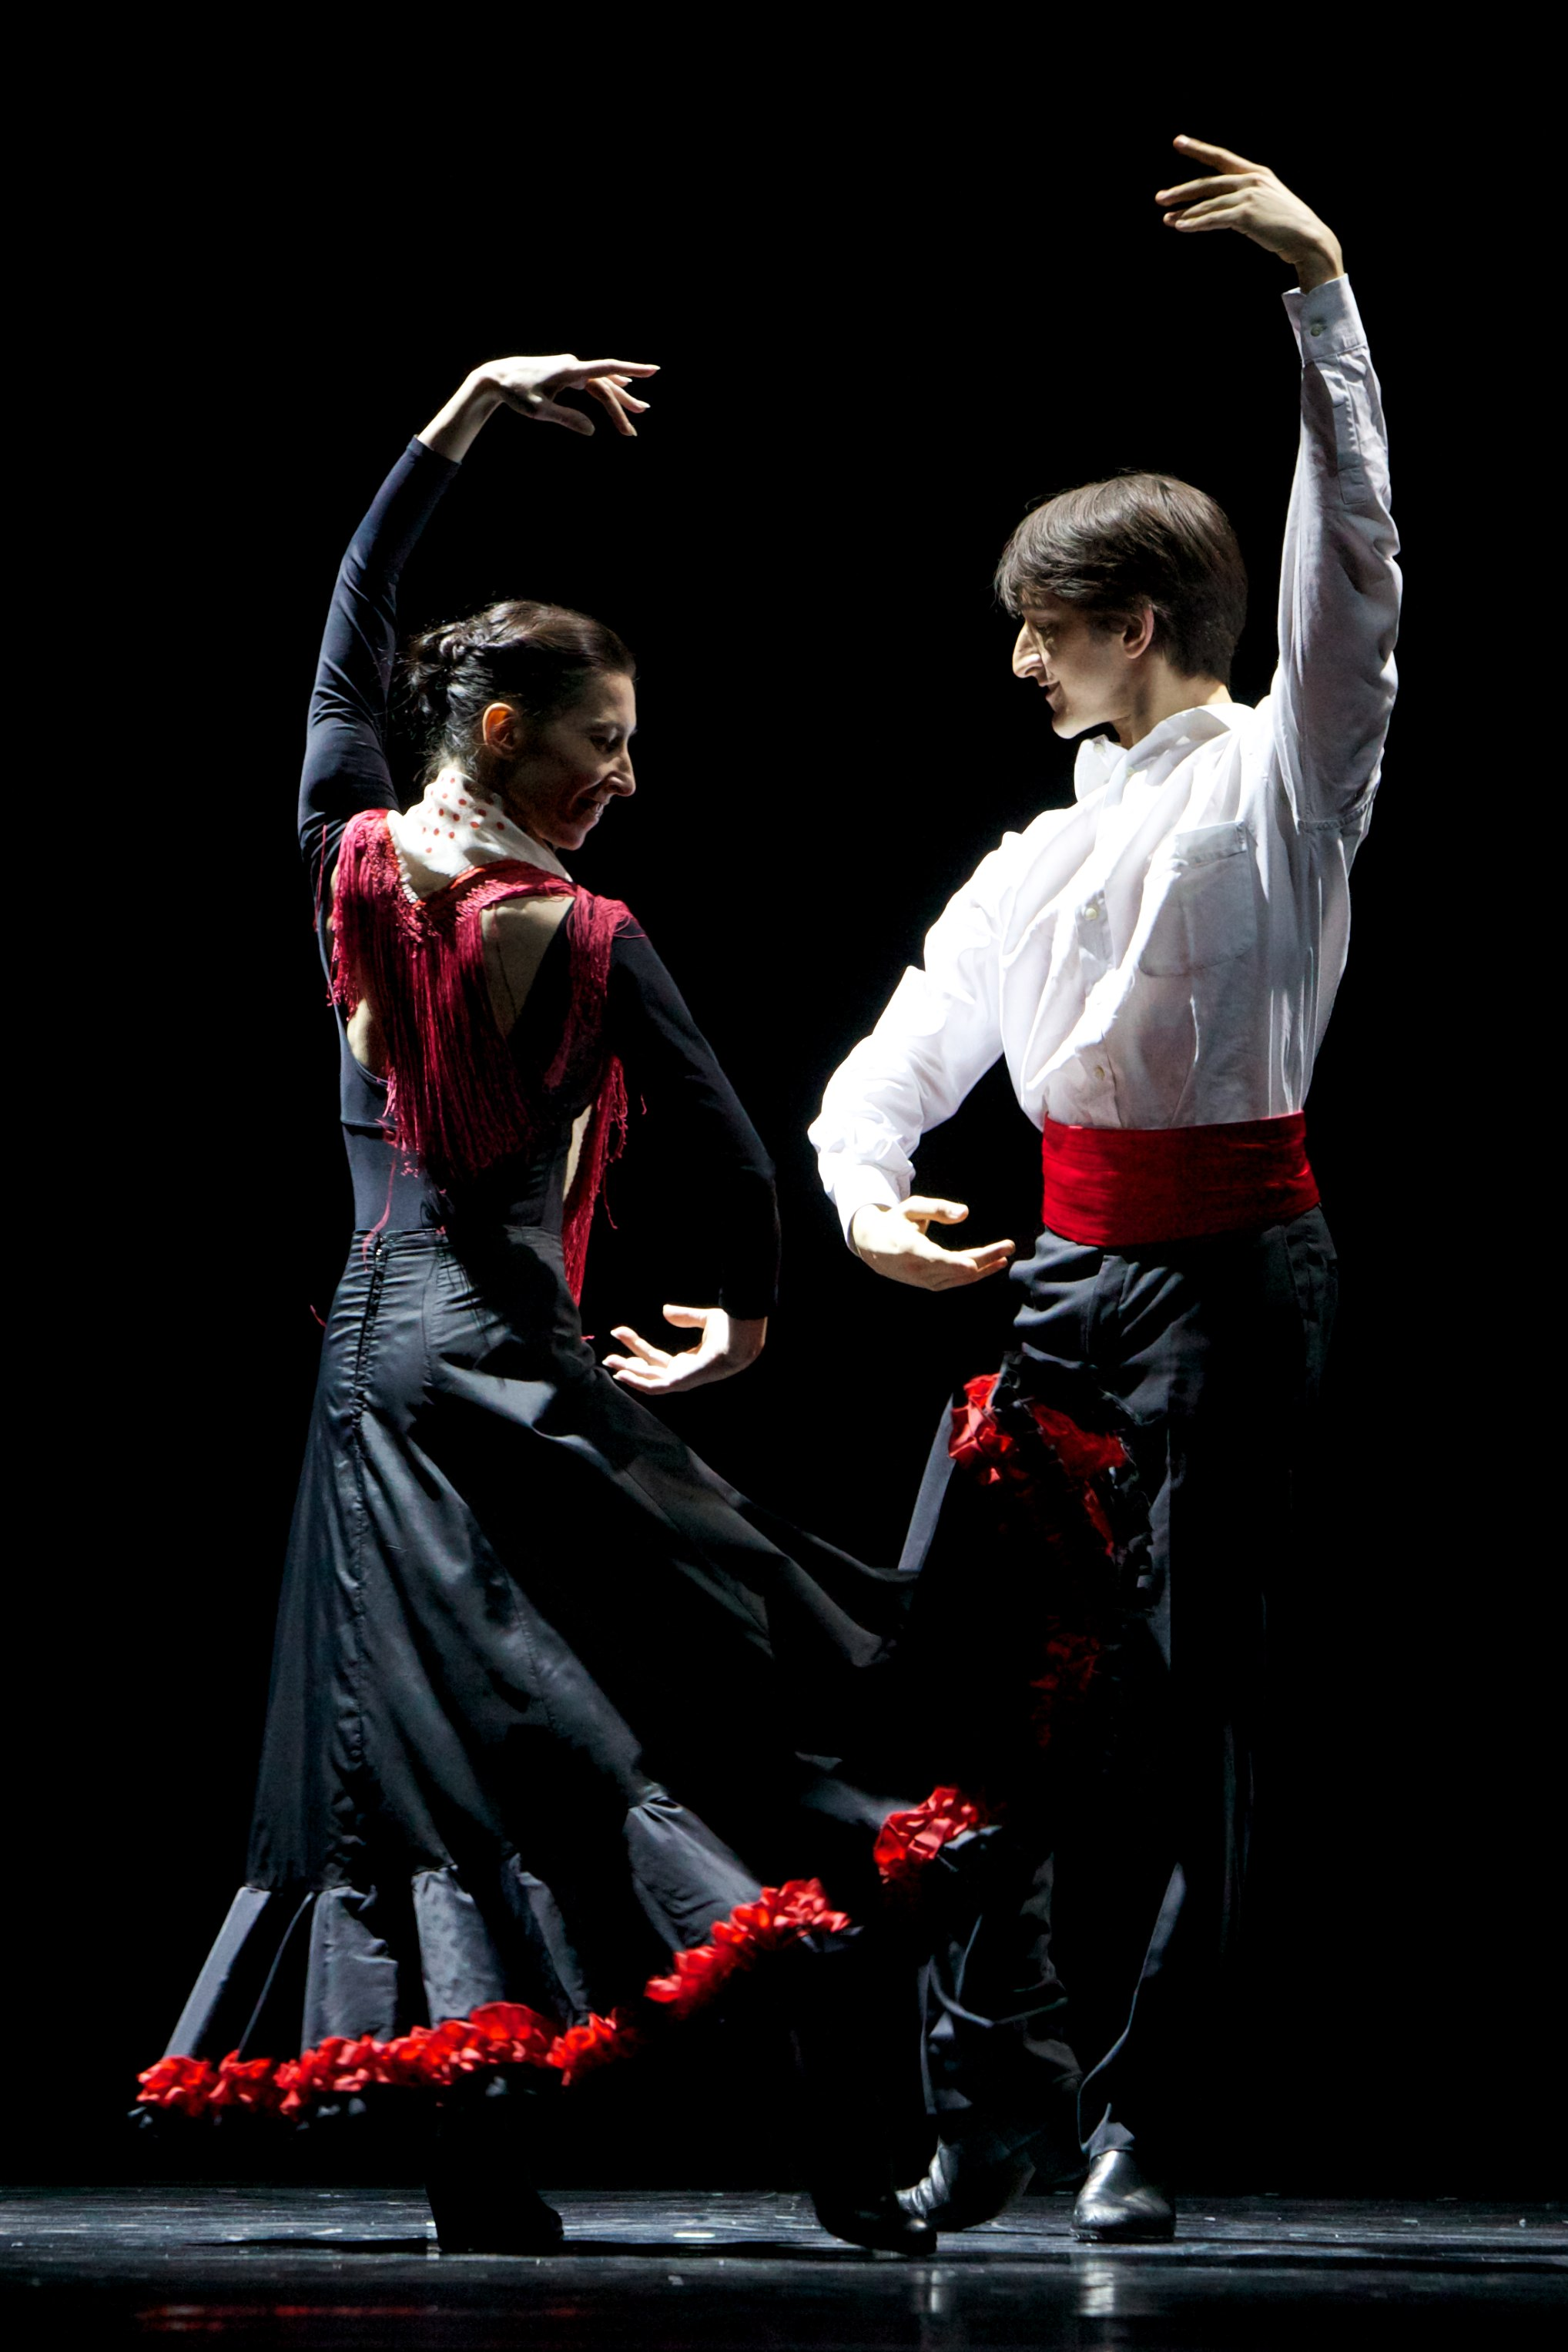 two dancers in flamenco costume